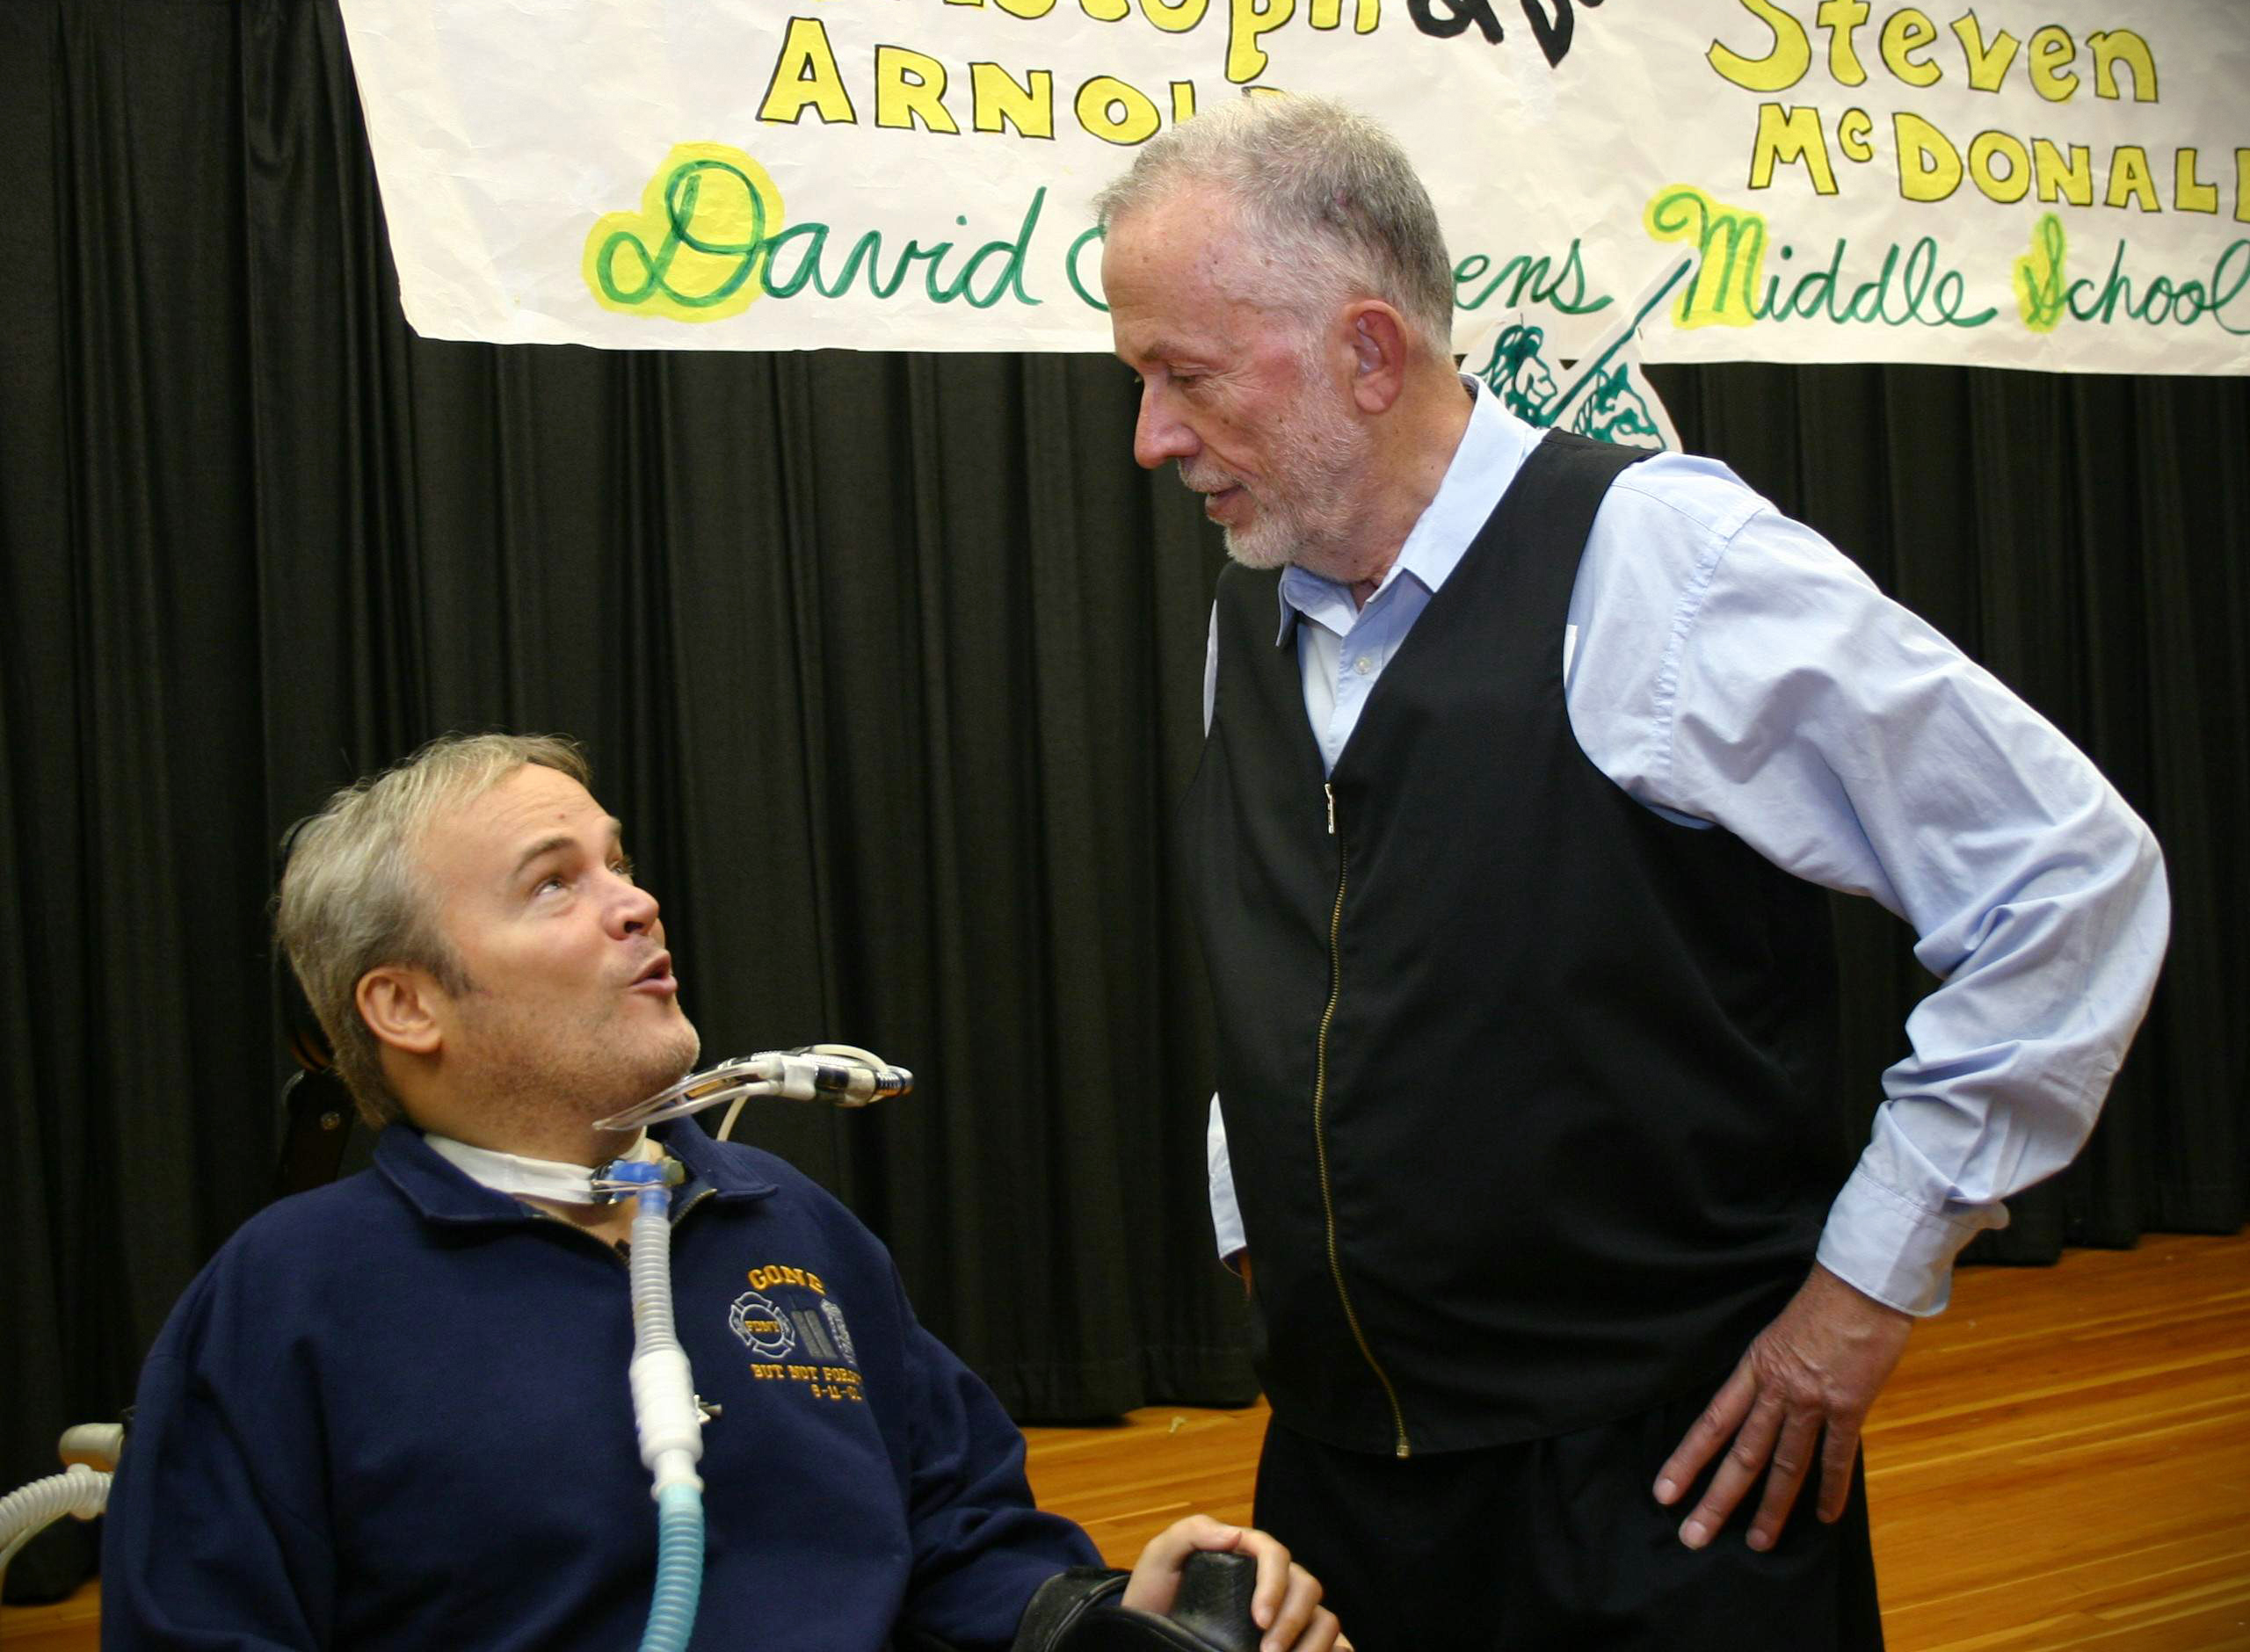 Johann Christoph Arnold and NYPD Detective Steven McDonald talking together after a Breaking the Cycle assembly